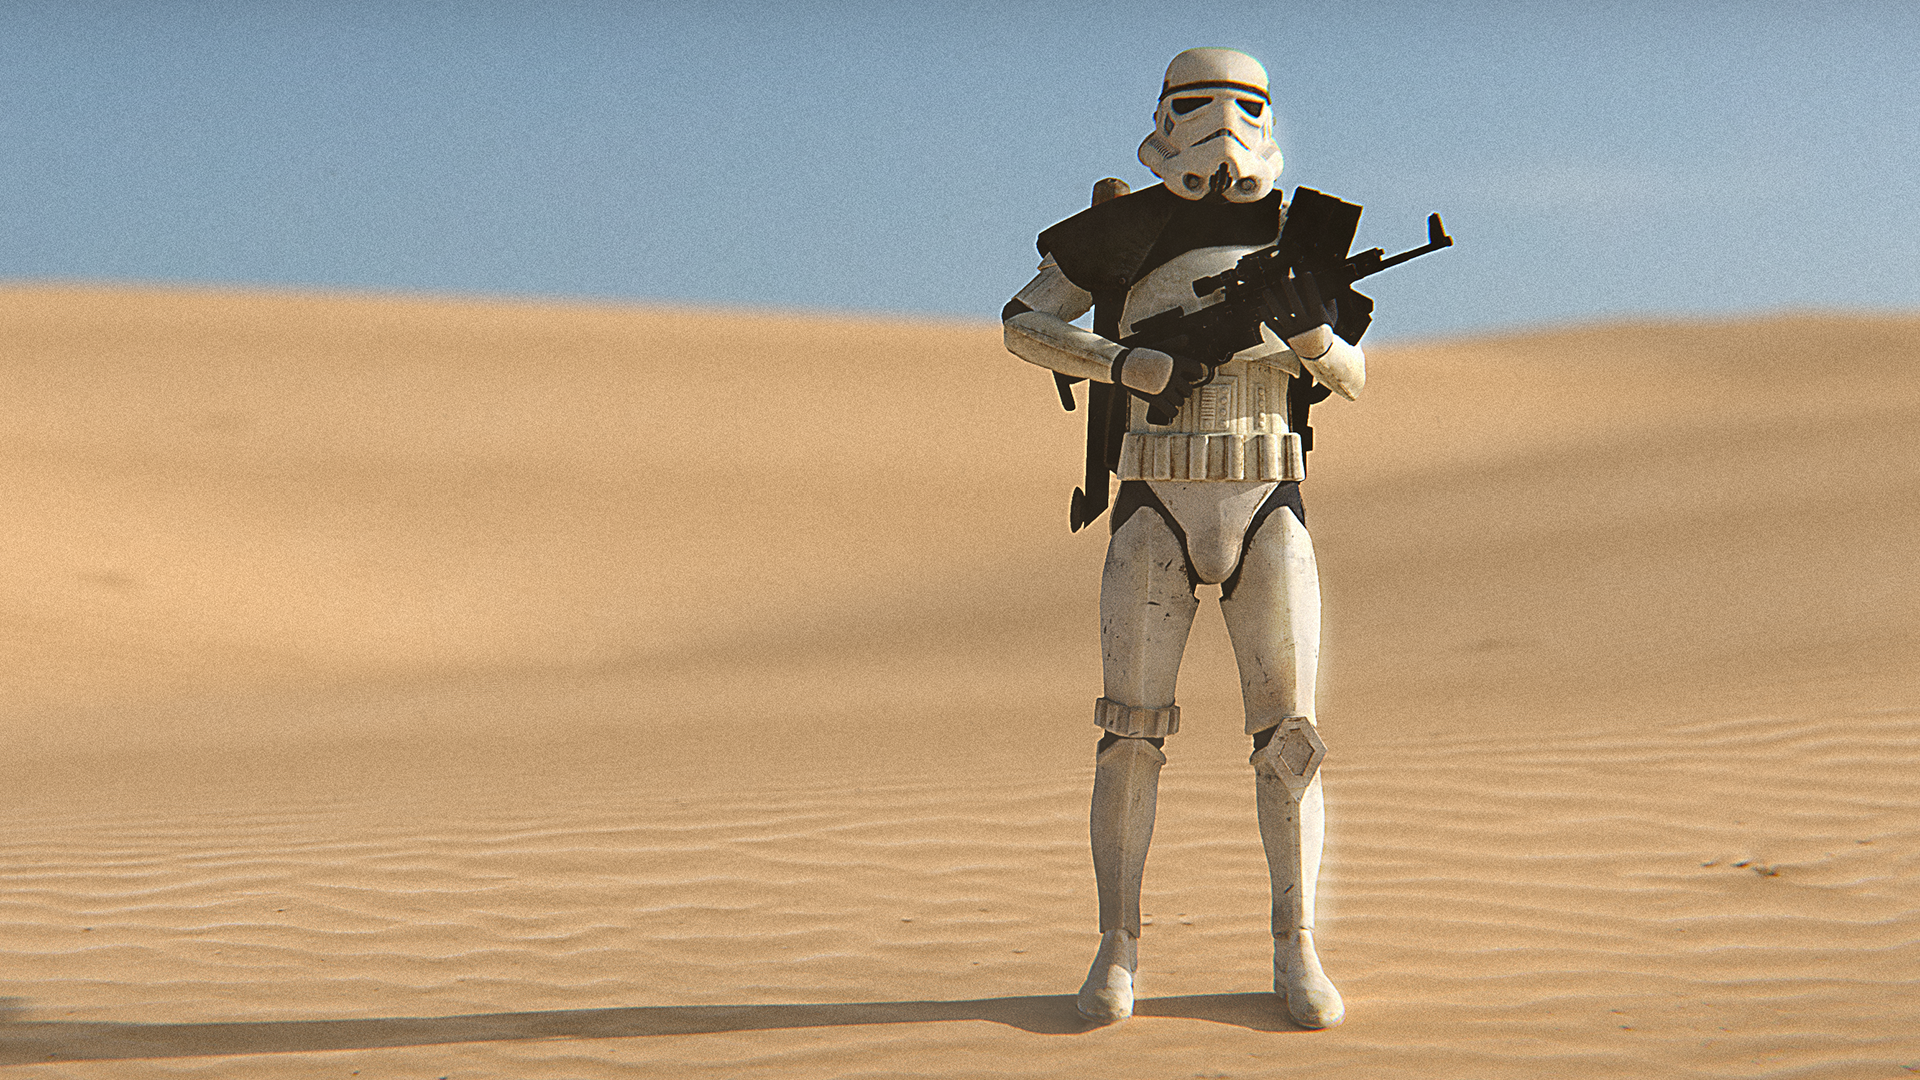 [OC 1920x1080] Stormtrooper wallpaper made in Blender and